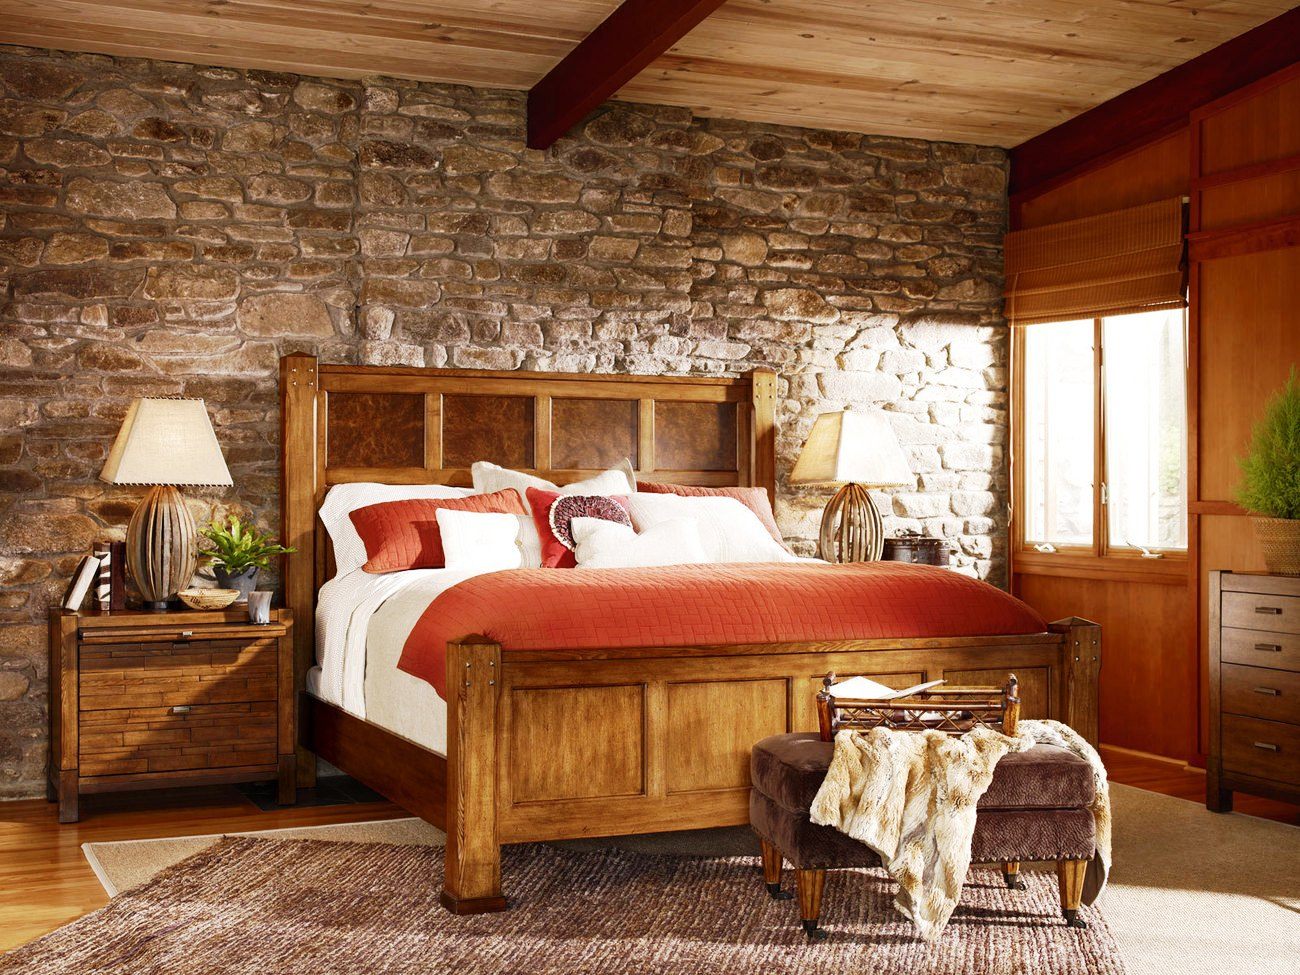 7-Rustic Bedroom Ideas